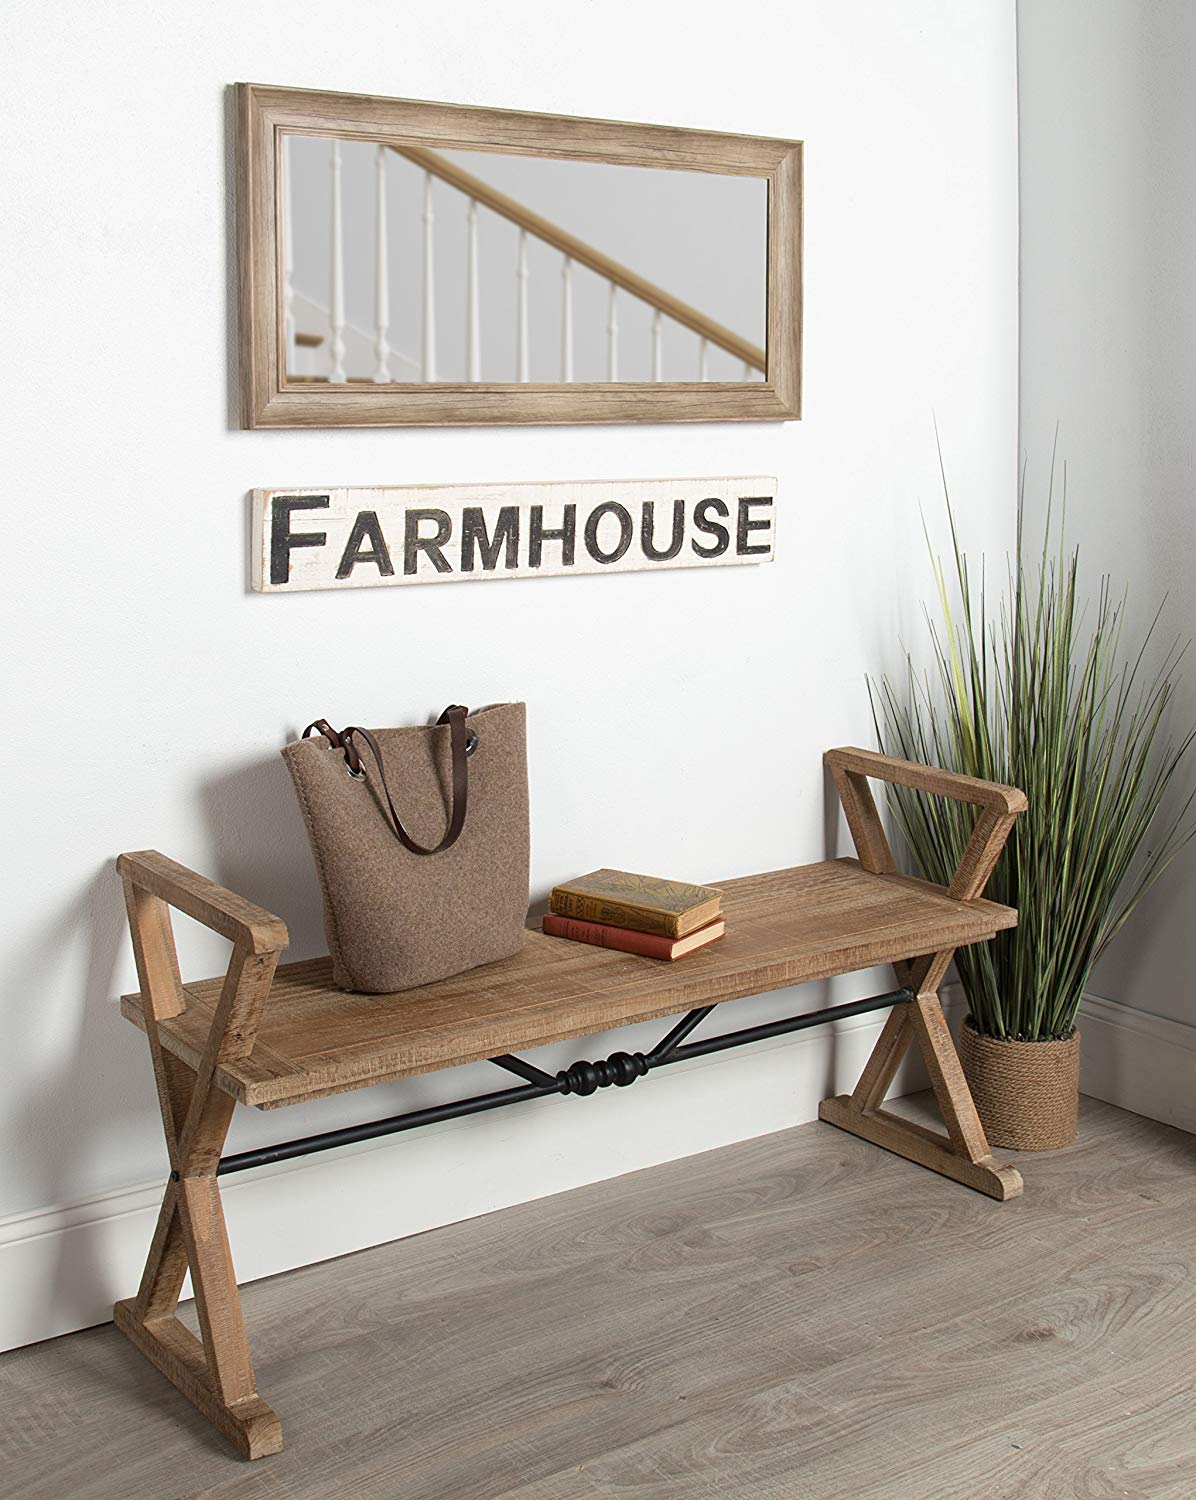 Farmhouse-Style-Entryway-Bench-With-Black-Metal-Accent-Weathered-Wood-Finish-Rustic